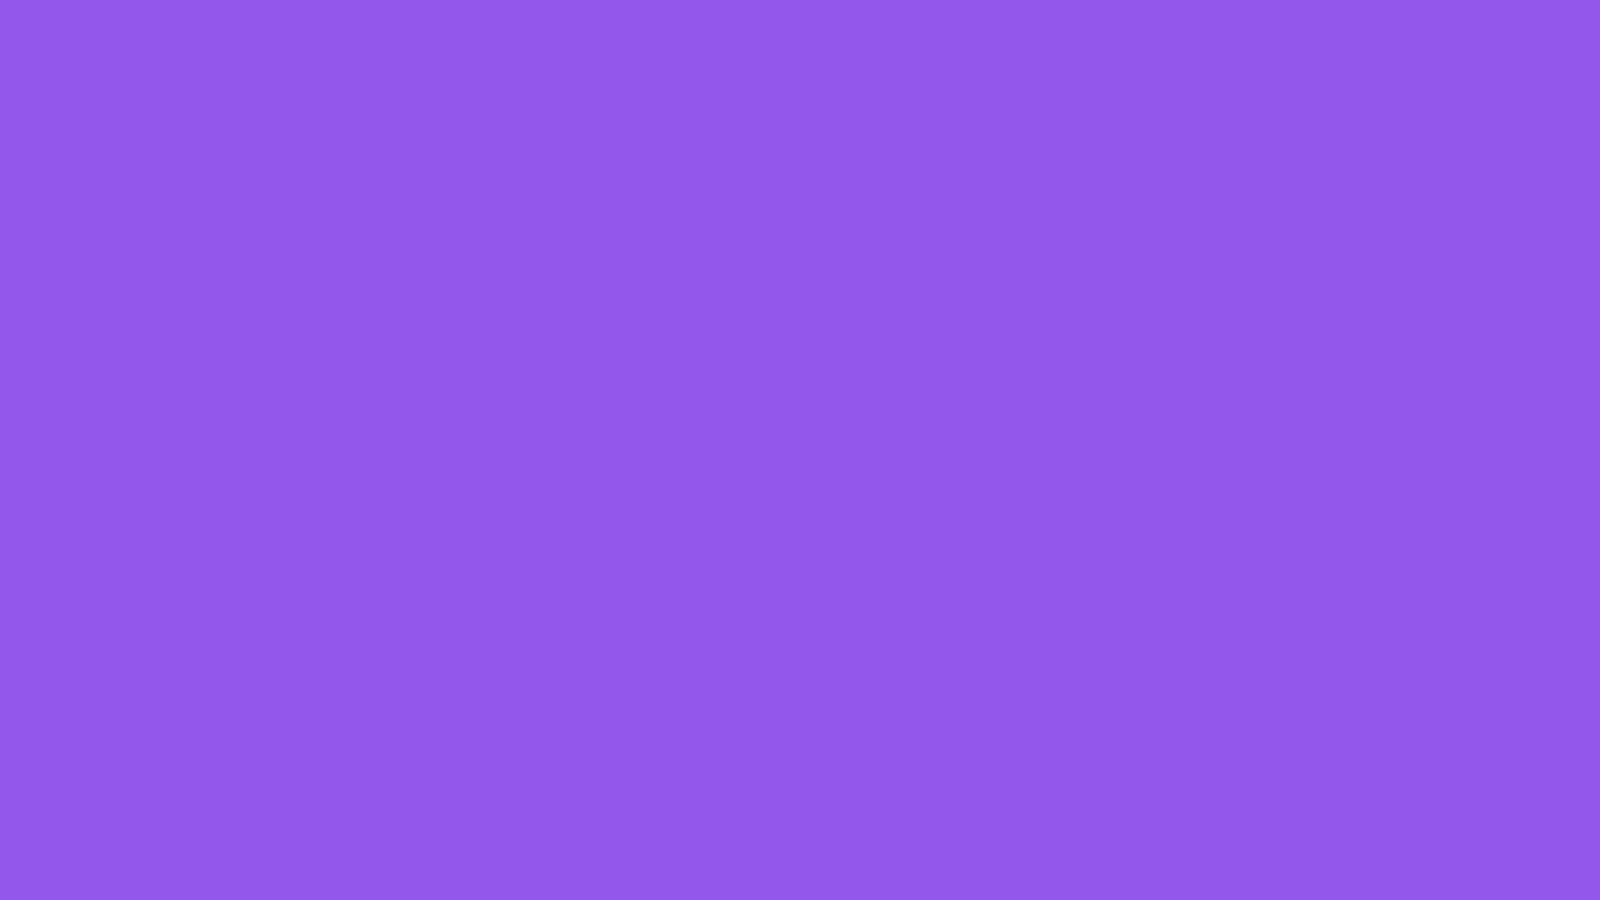 Lavender Color Wallpaper - WallpaperSafari